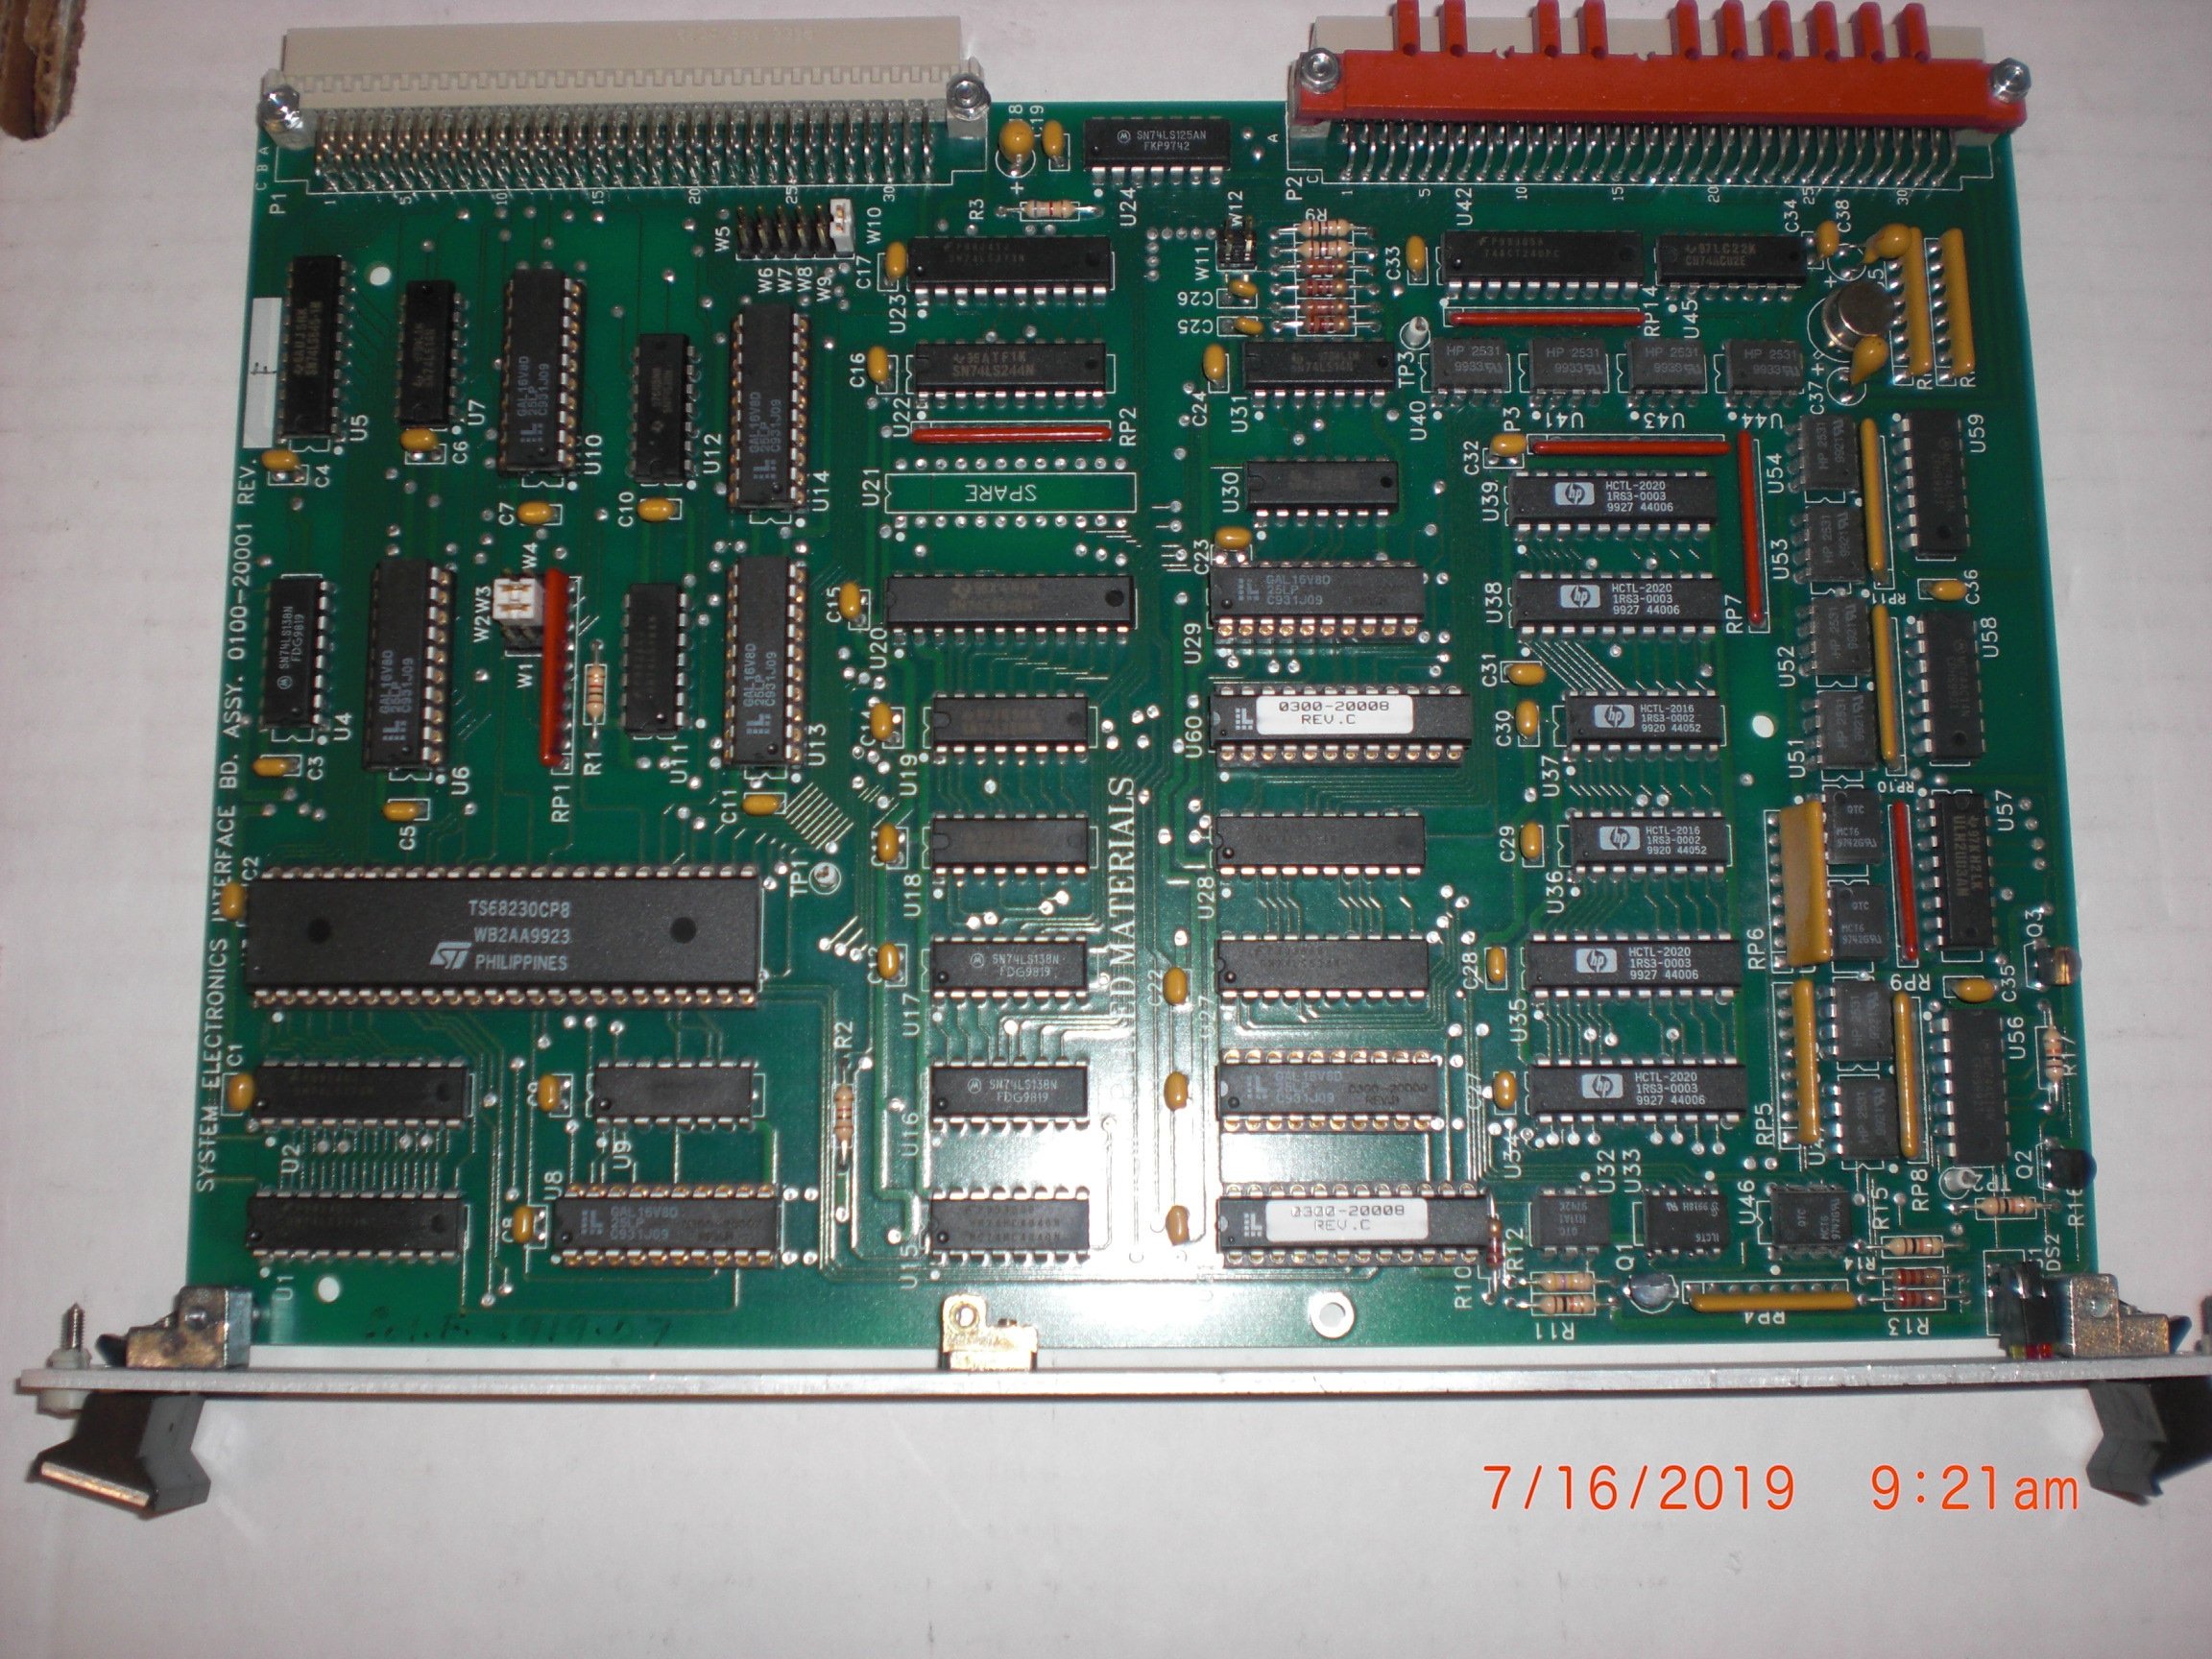 PCB Applied Materials (AMAT) 0100-20001 ASSY,SYSTEM ELECTRONICS INTERFACE BOARD